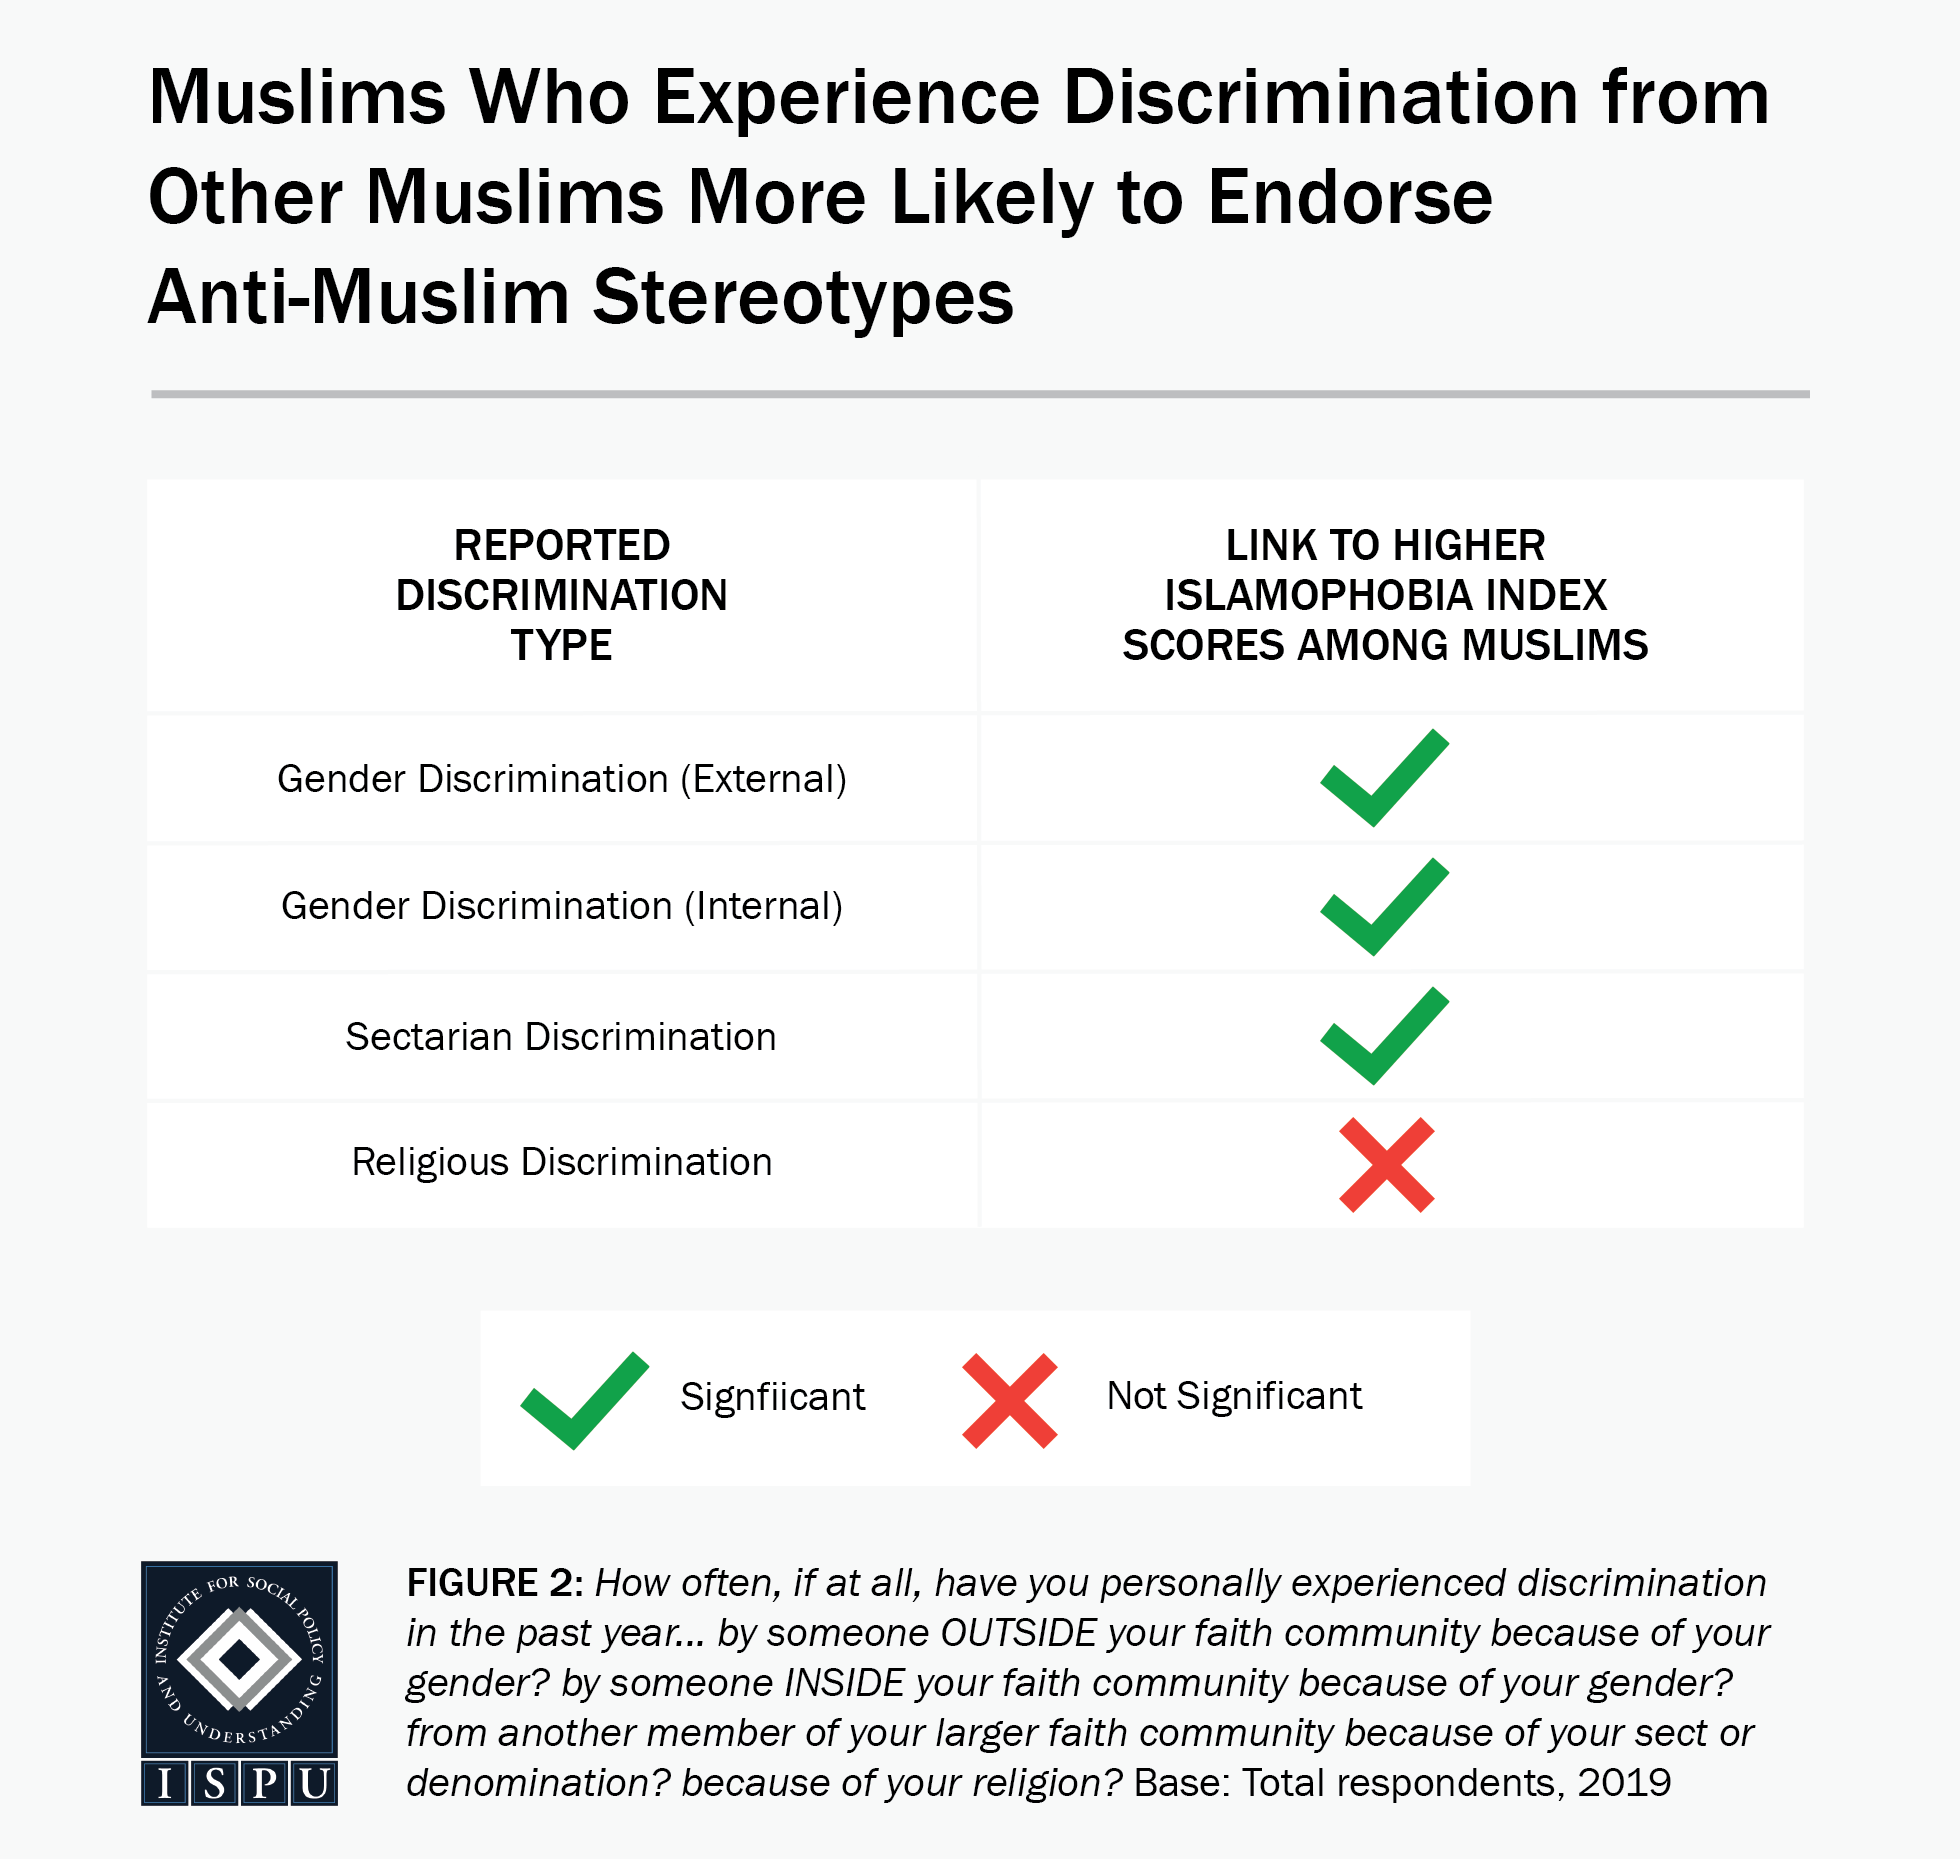 Figure 2: A table showing that Muslims who experience discrimination from other Muslims are more likely to endorse anti-Muslim stereotypes